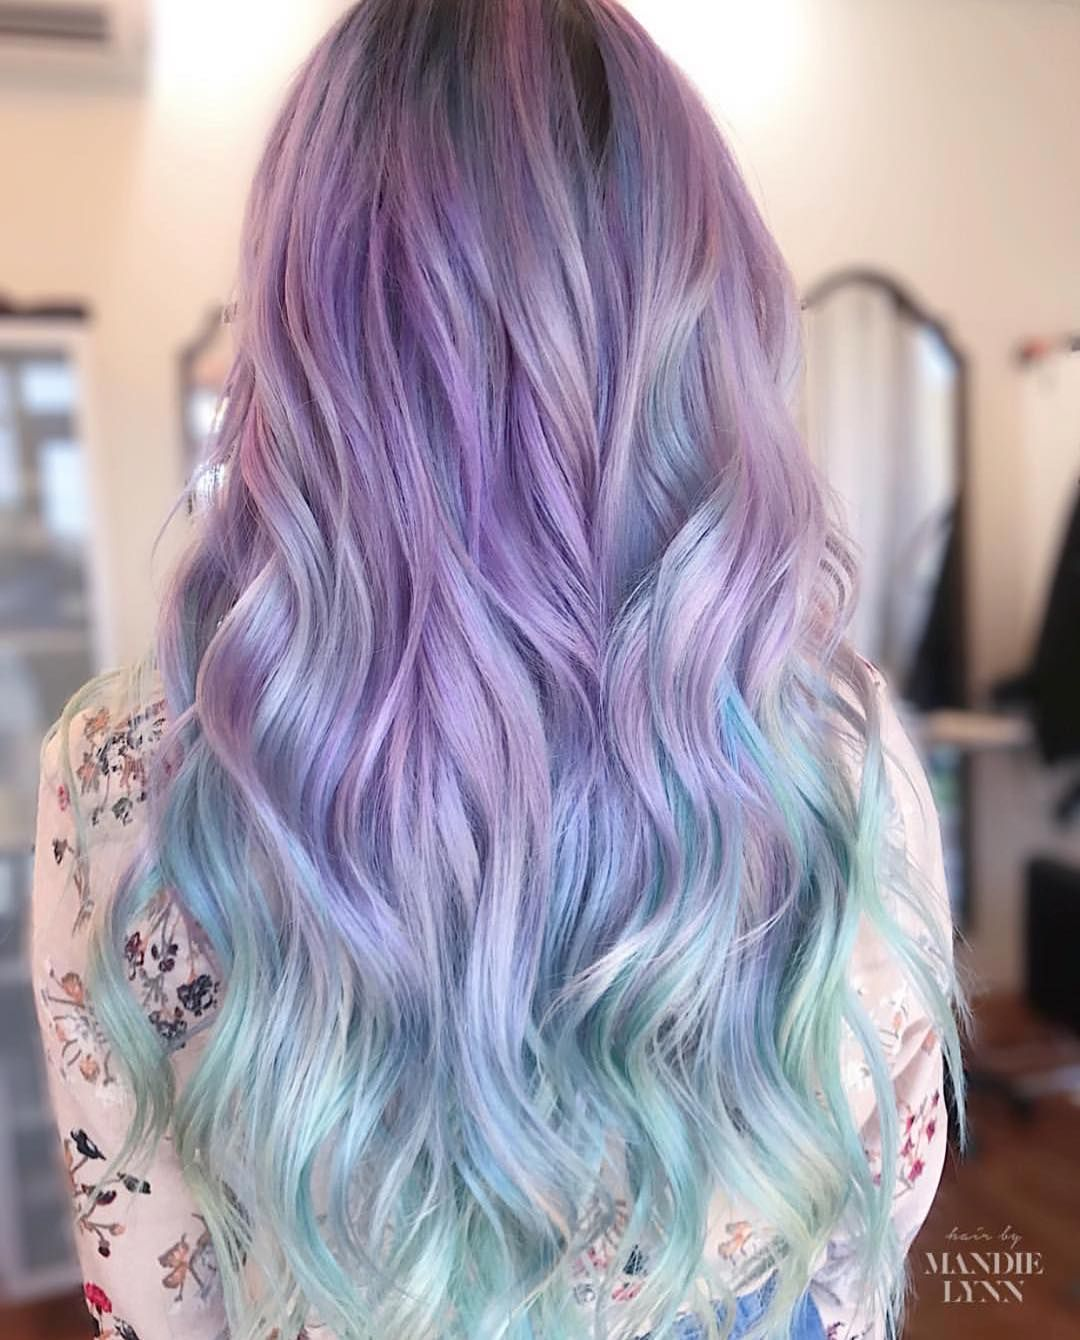 Pin by jessica lewis on hair nails make up pinterest hair